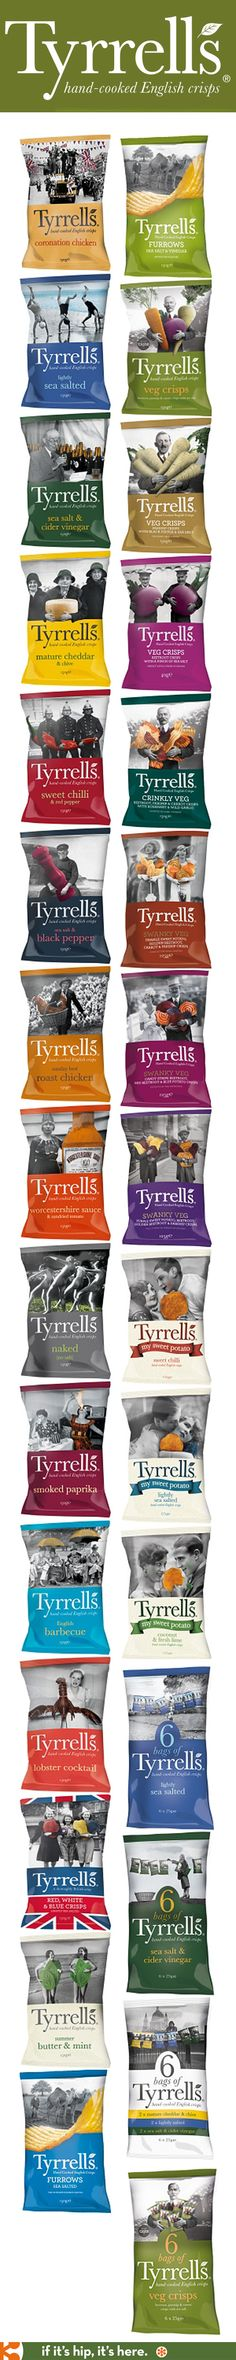 All of Tyrrell's snack products have great packaging. These are just their crips (chips).